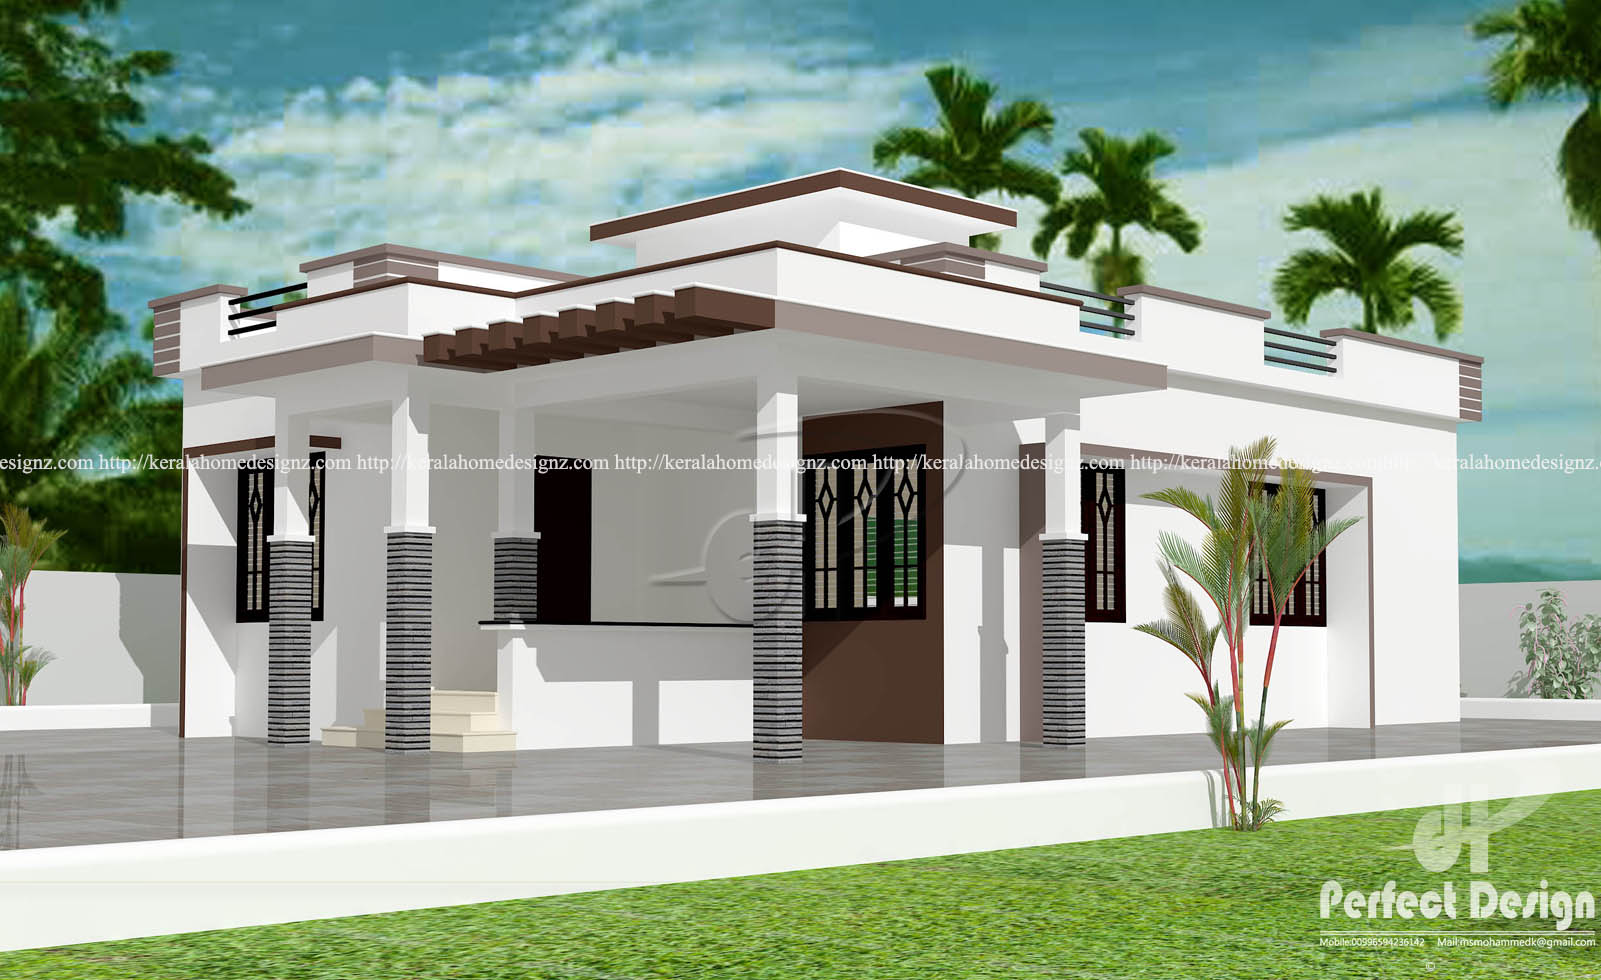 12 lakhs budget house plans in kerala for Www homedesign com